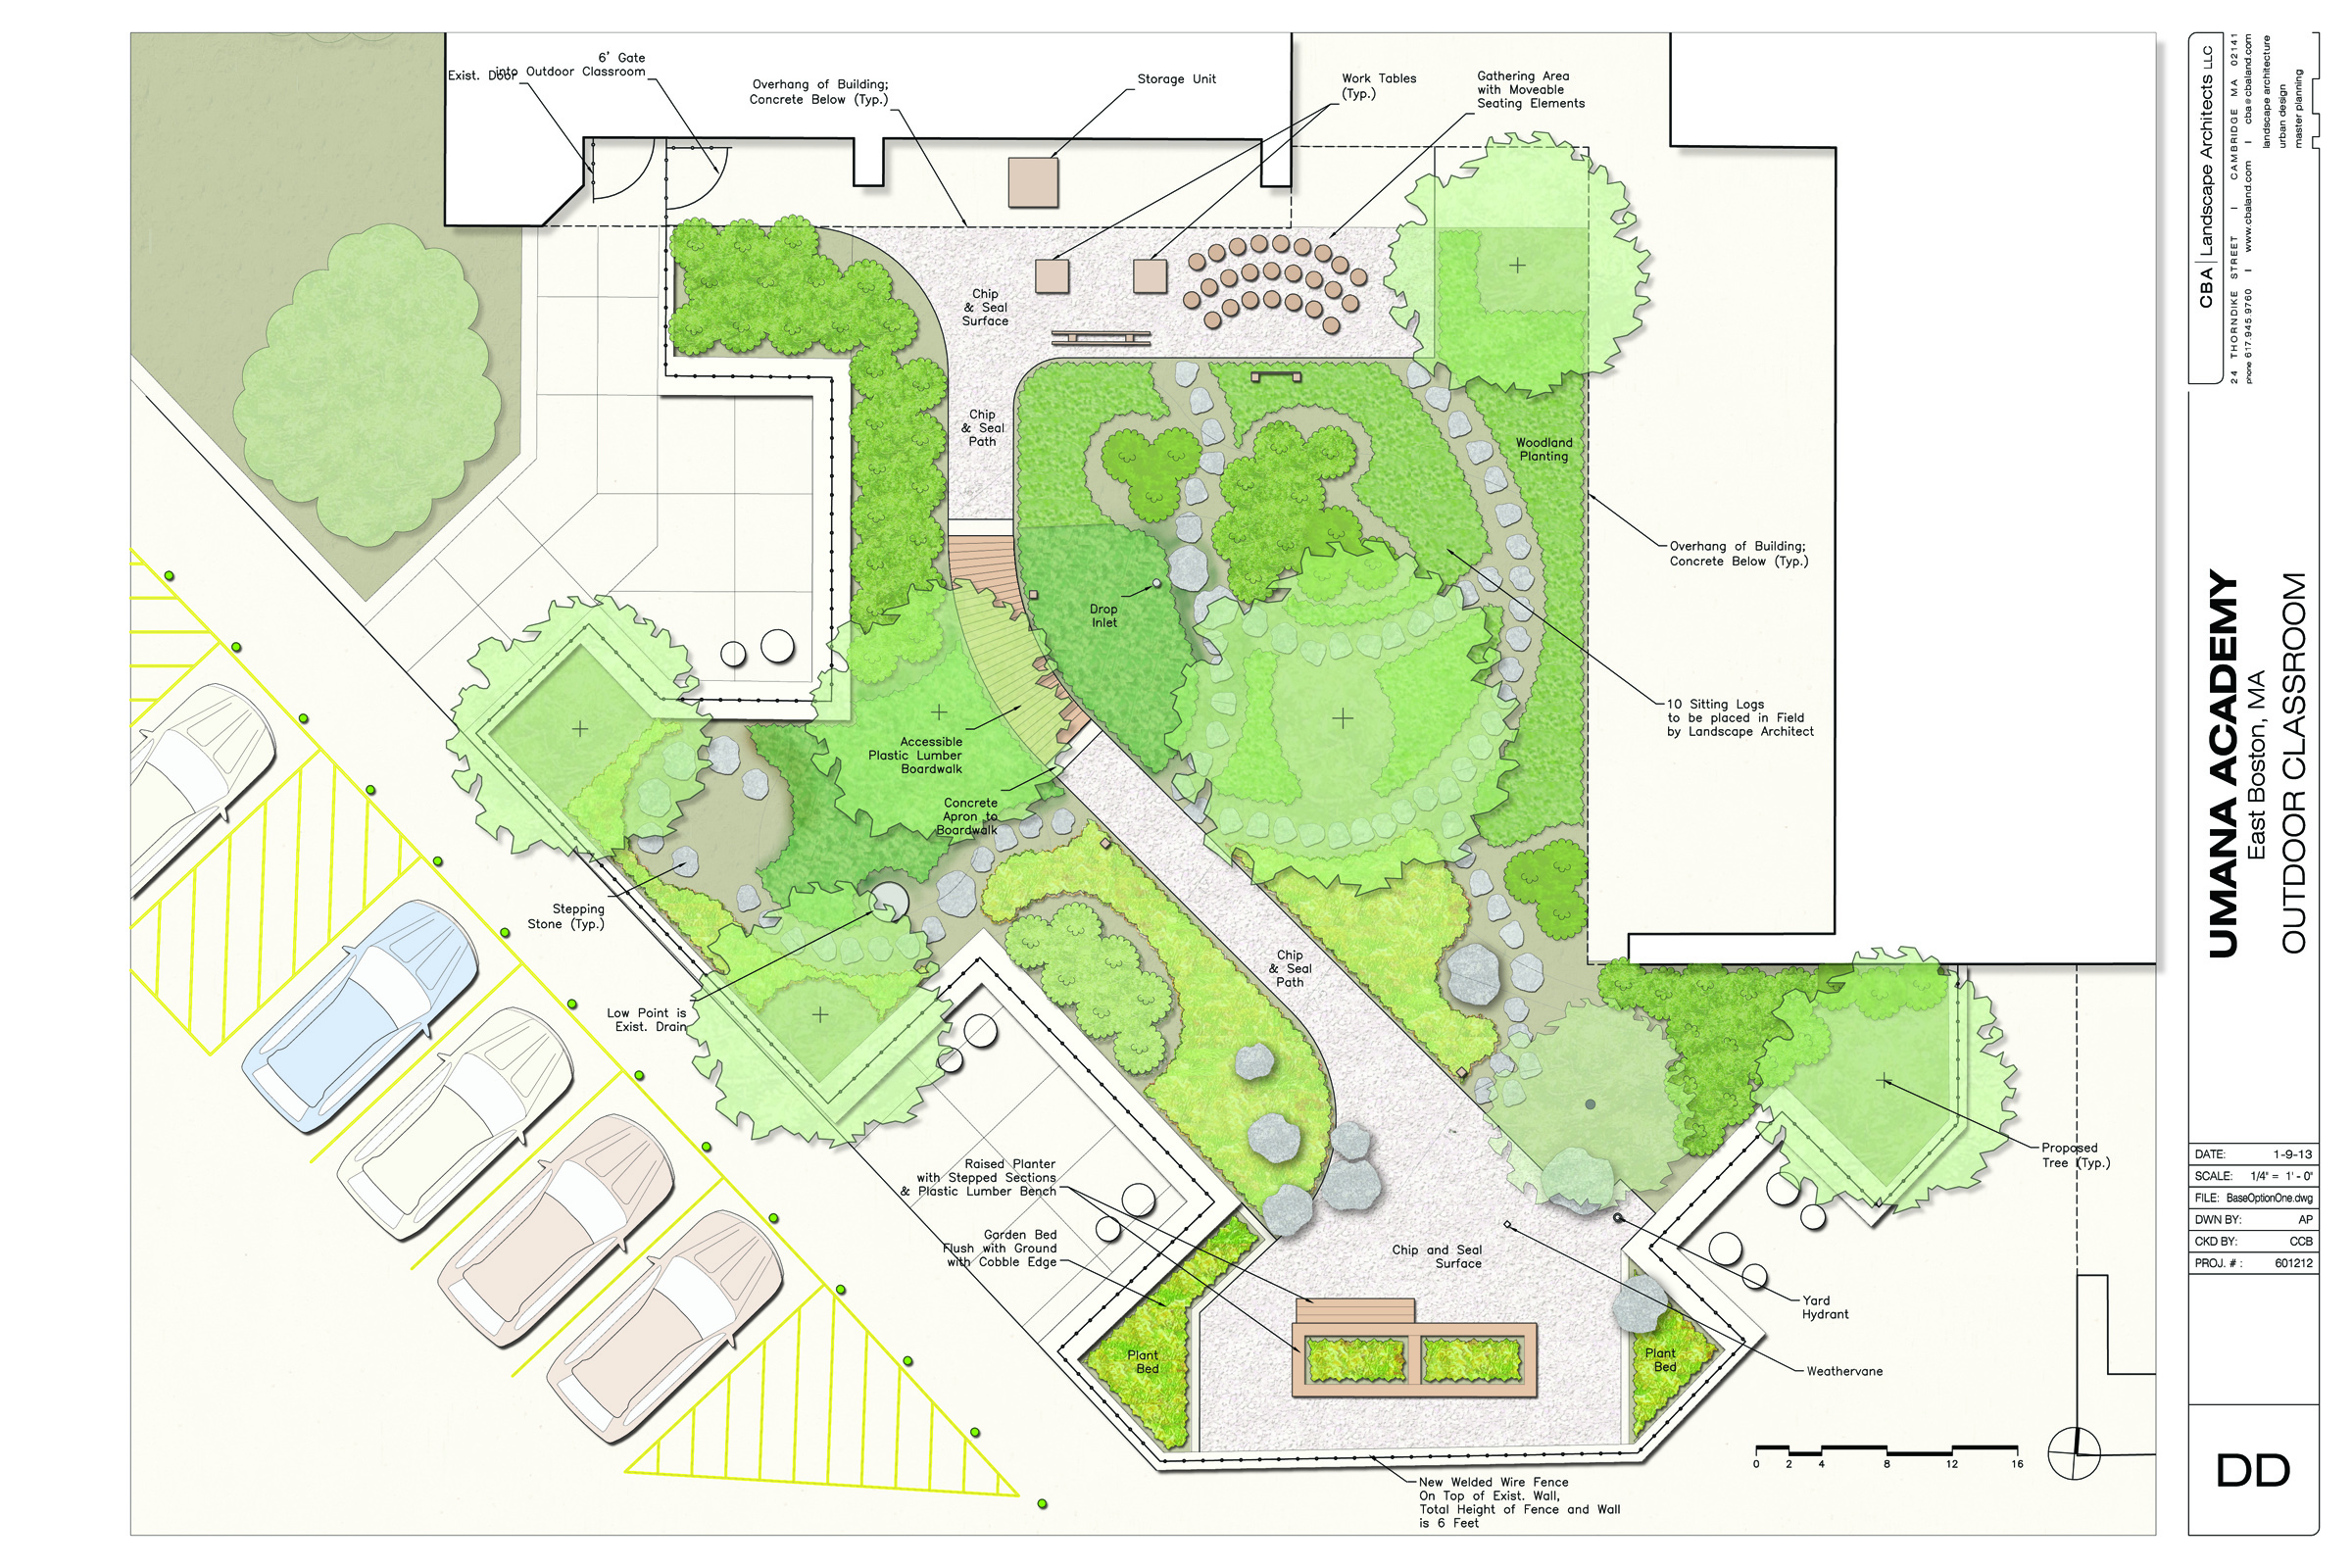 Outdoor Classroom Design Plans : Boston schoolyard initiative projects completed